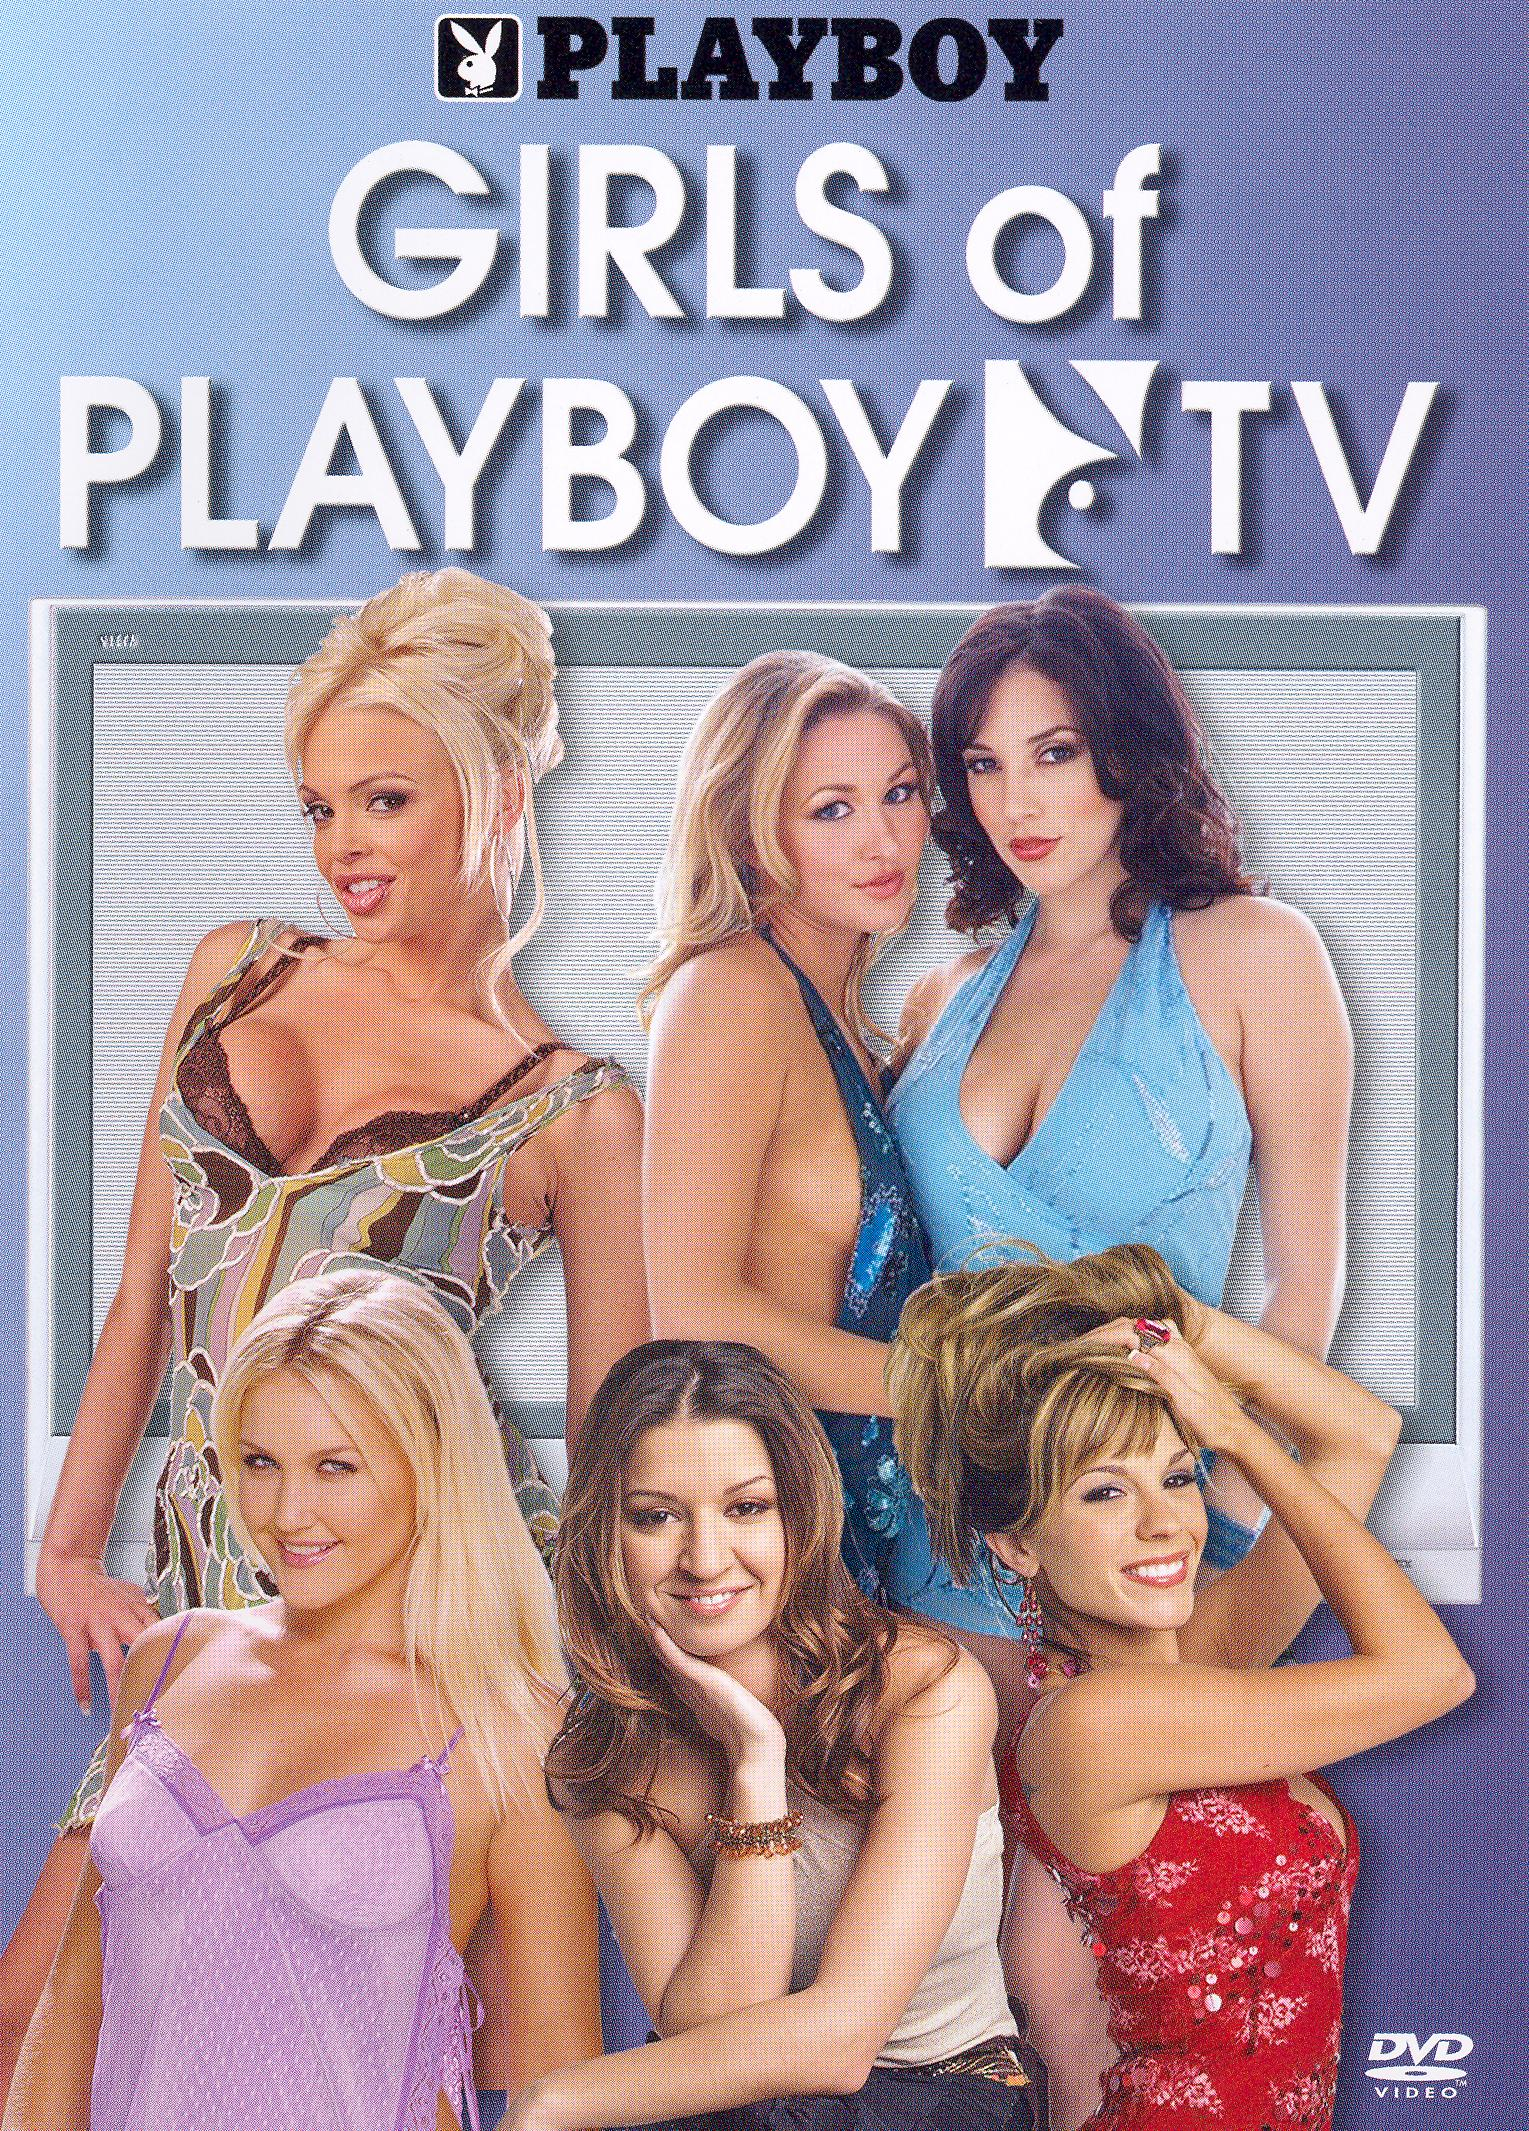 Playboy Girls Of Playboy Tv